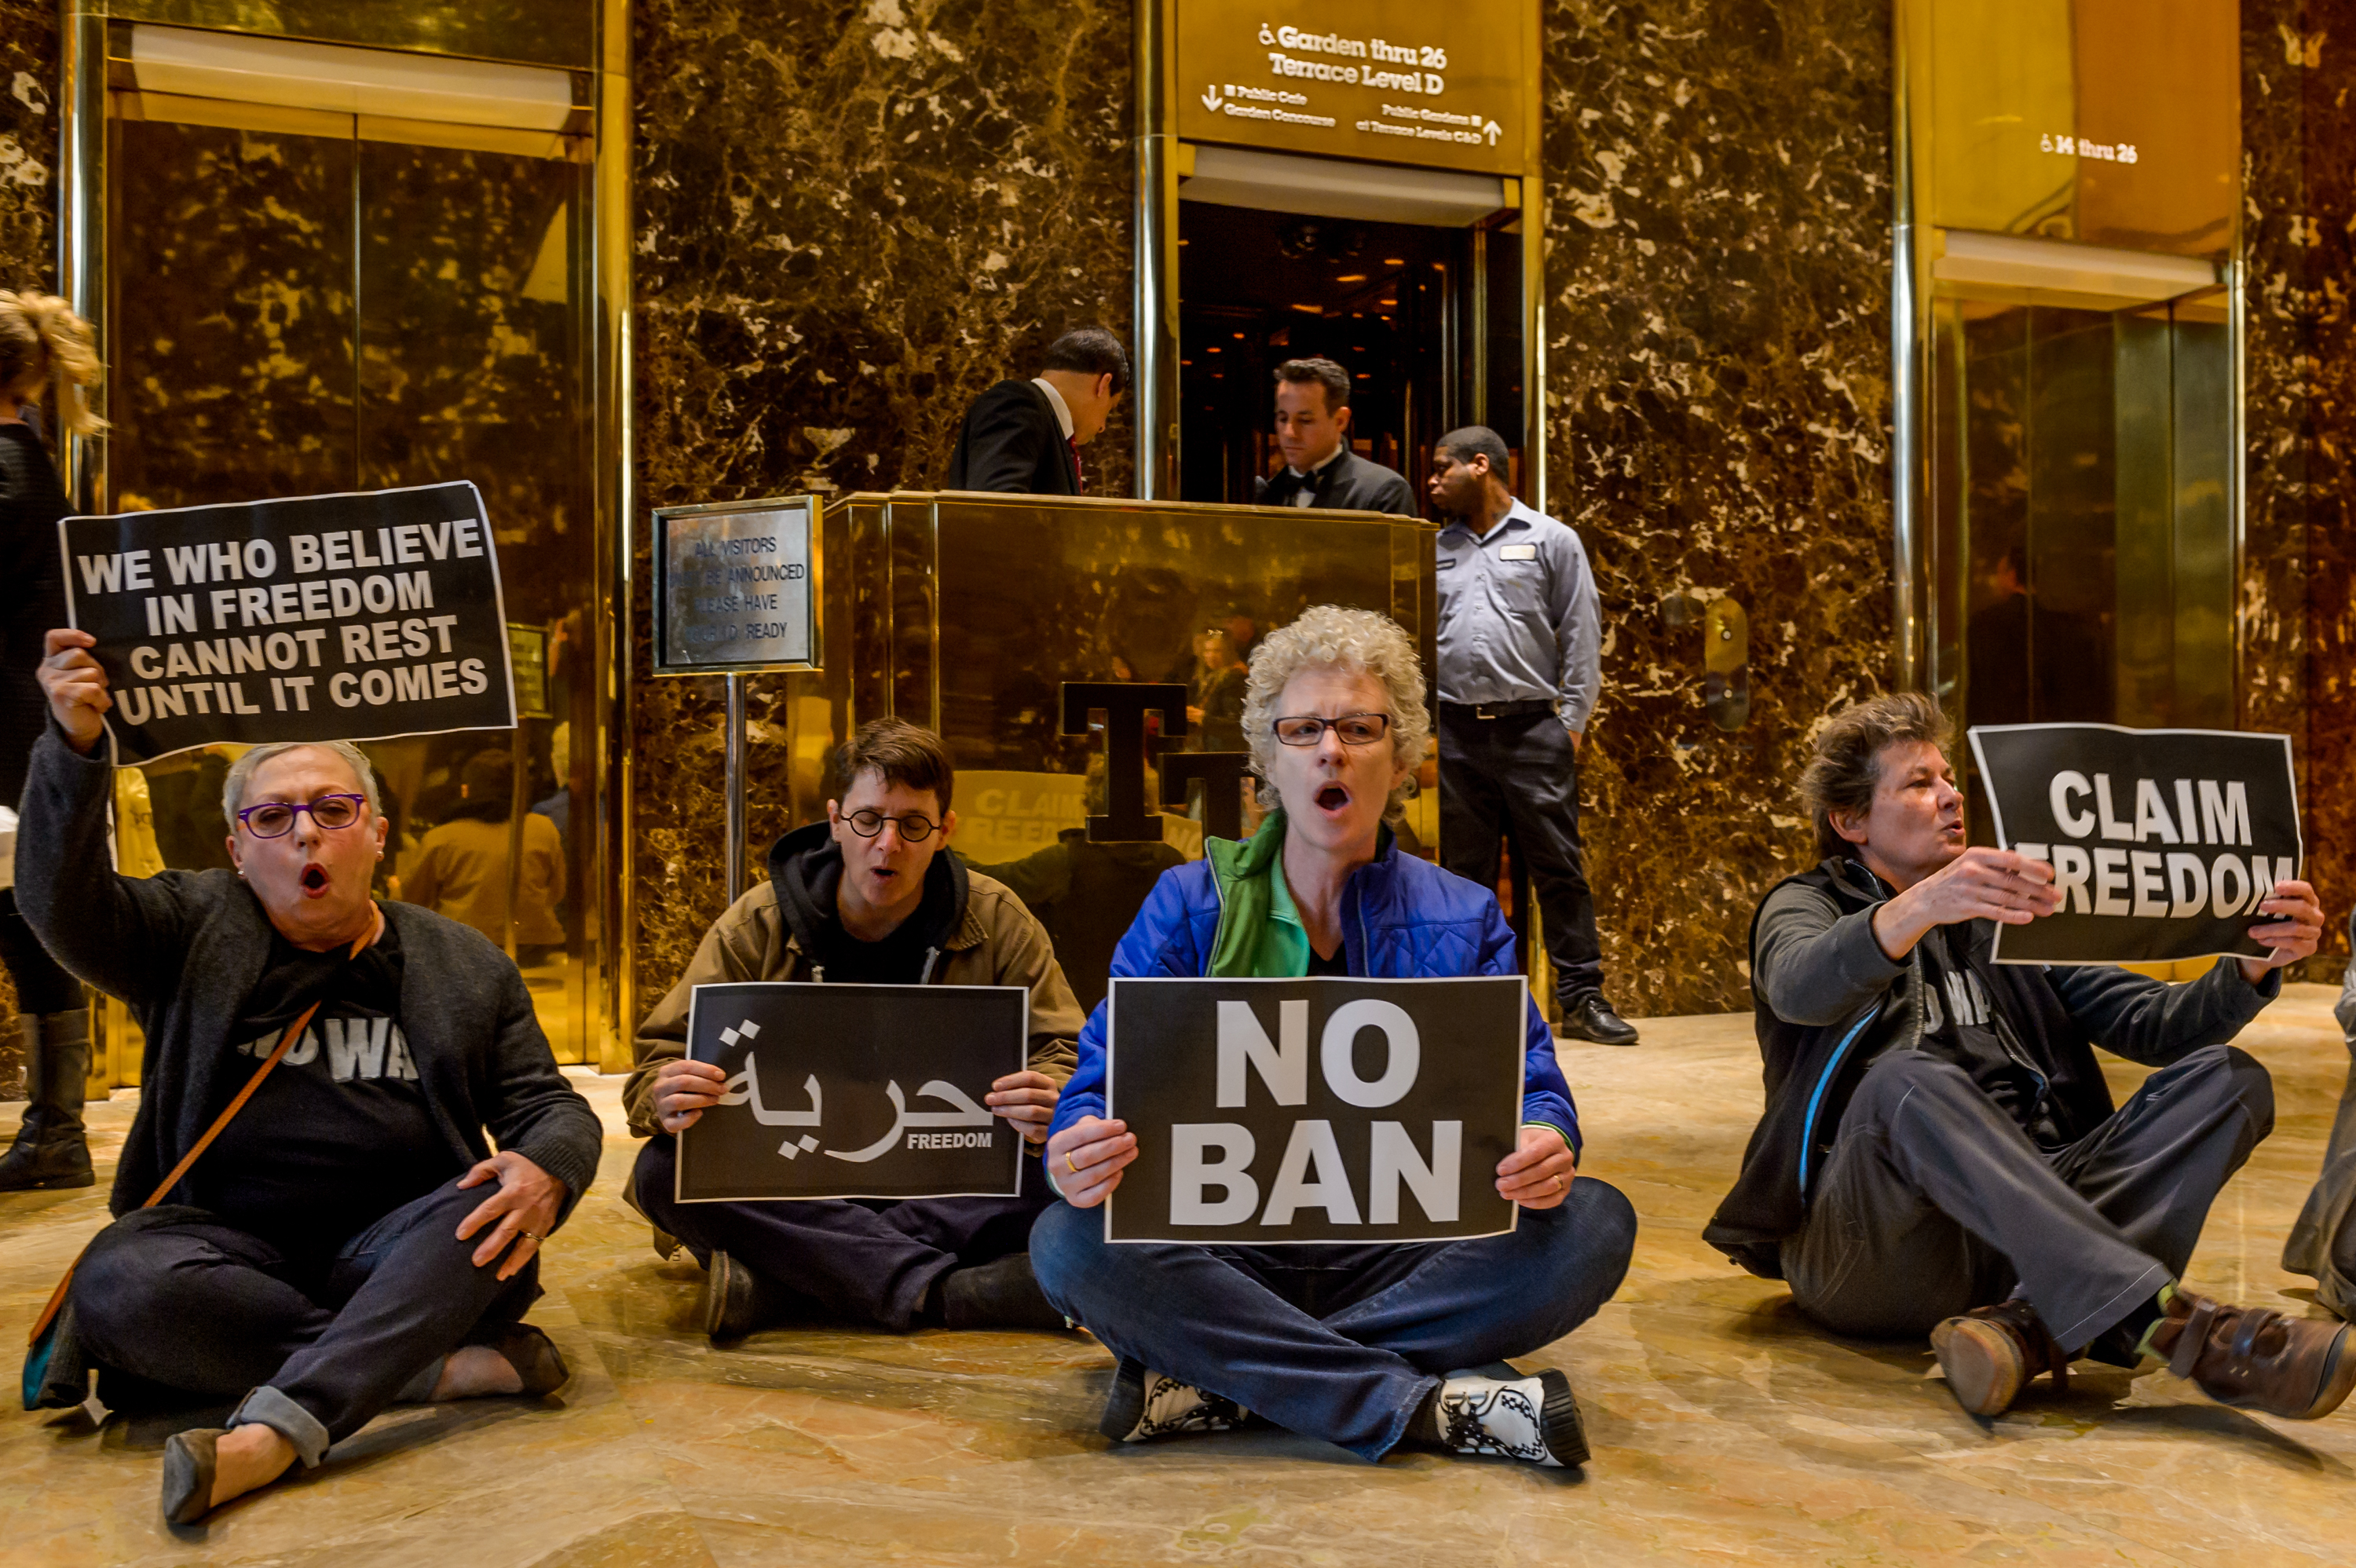 Dozens of activists unfurled anti-Trump banners inside Trump Tower in New York City on April 13, 2017.